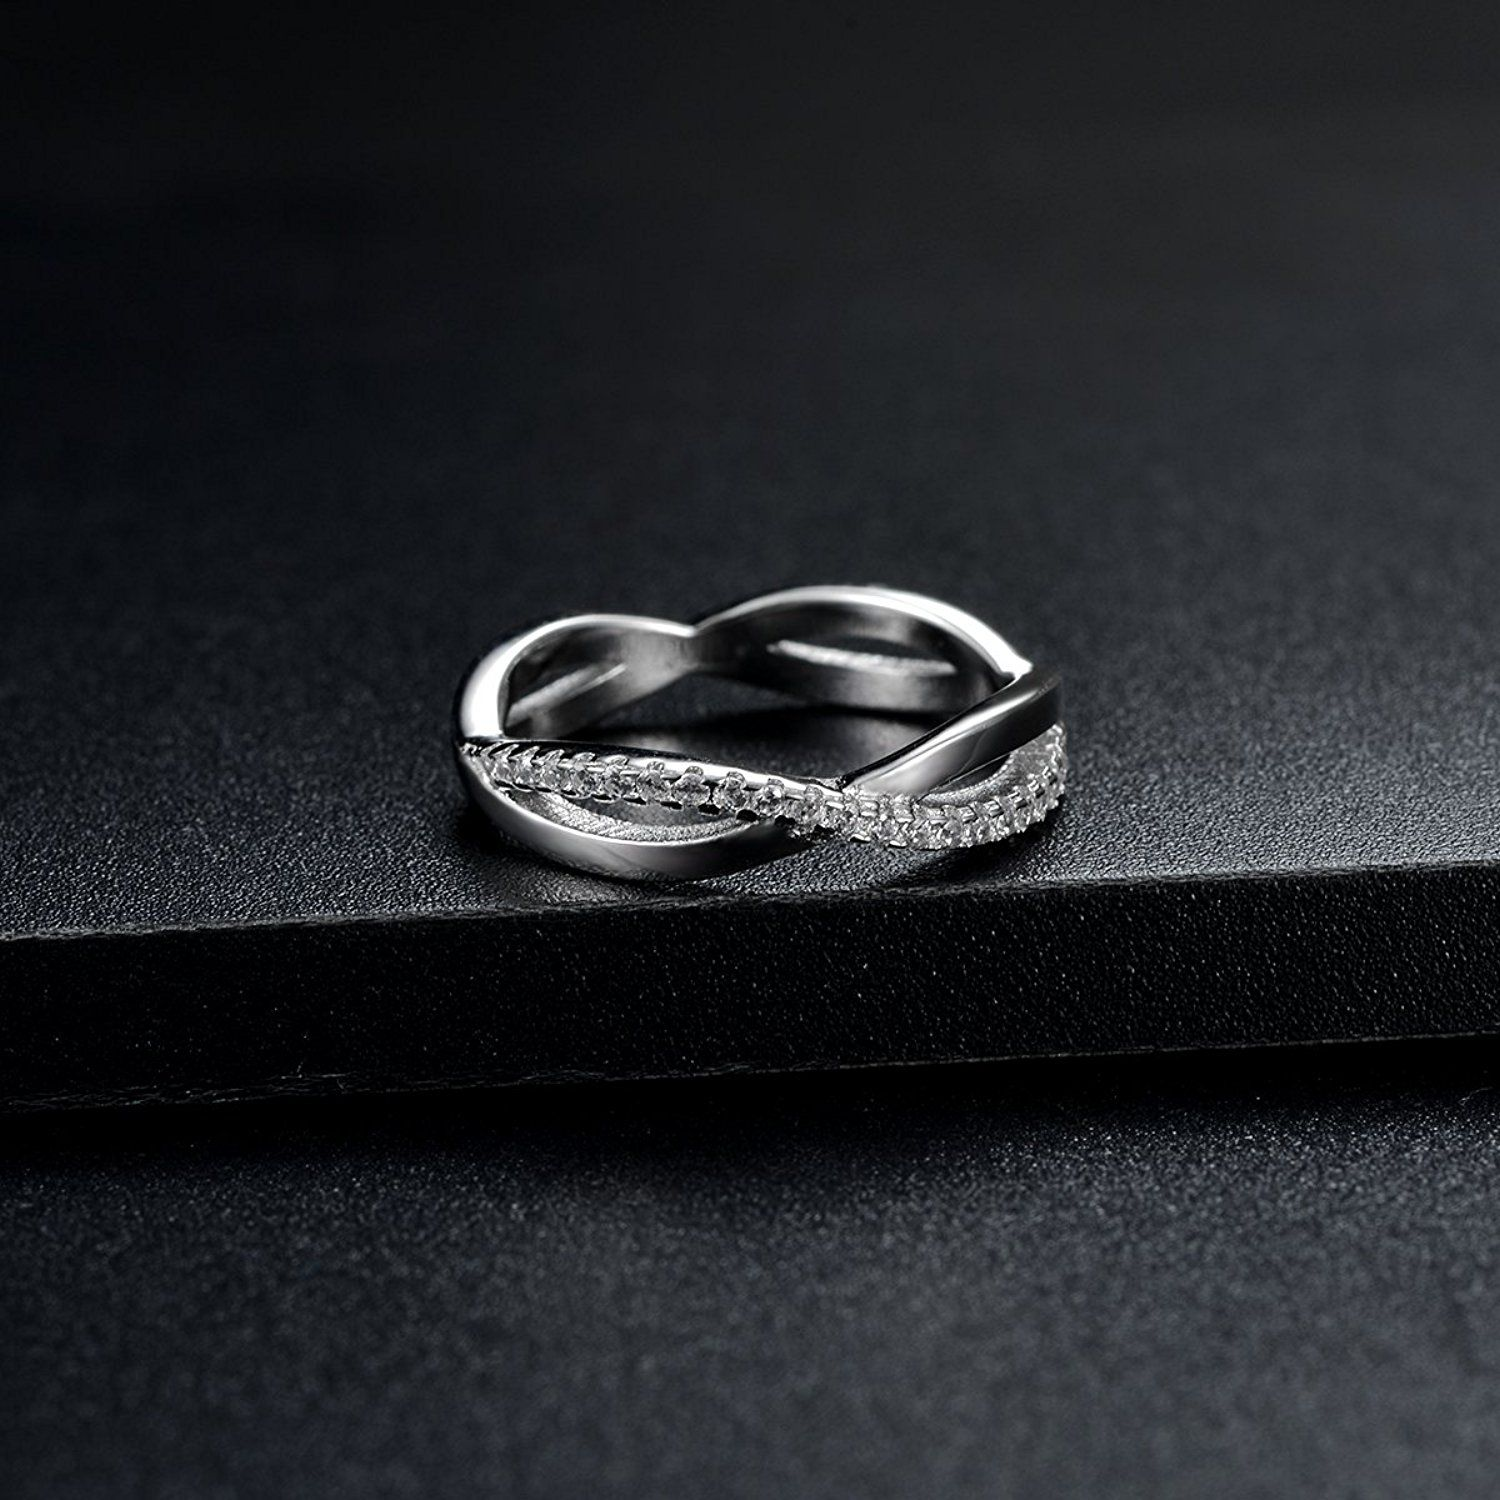 Engagement rings jewelry double infinity symbol band rings eternity engagement rings jewelry double infinity symbol band rings eternity cubic zirconia simulated diamond ring sterling biocorpaavc Image collections